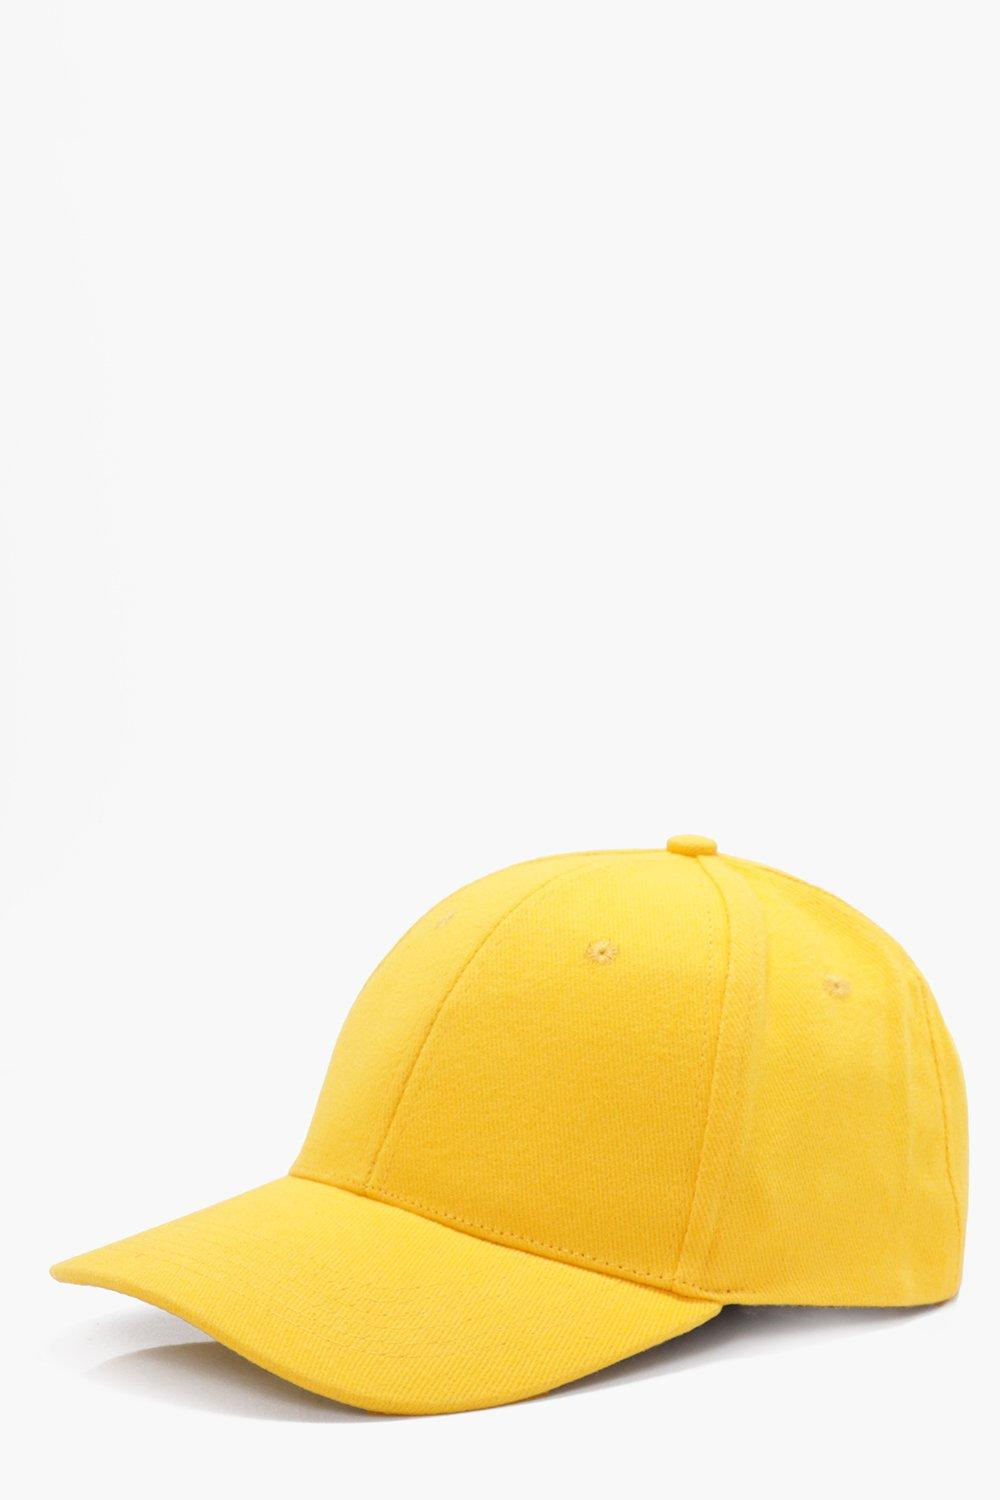 Cap - yellow - Basic Cap - yellow